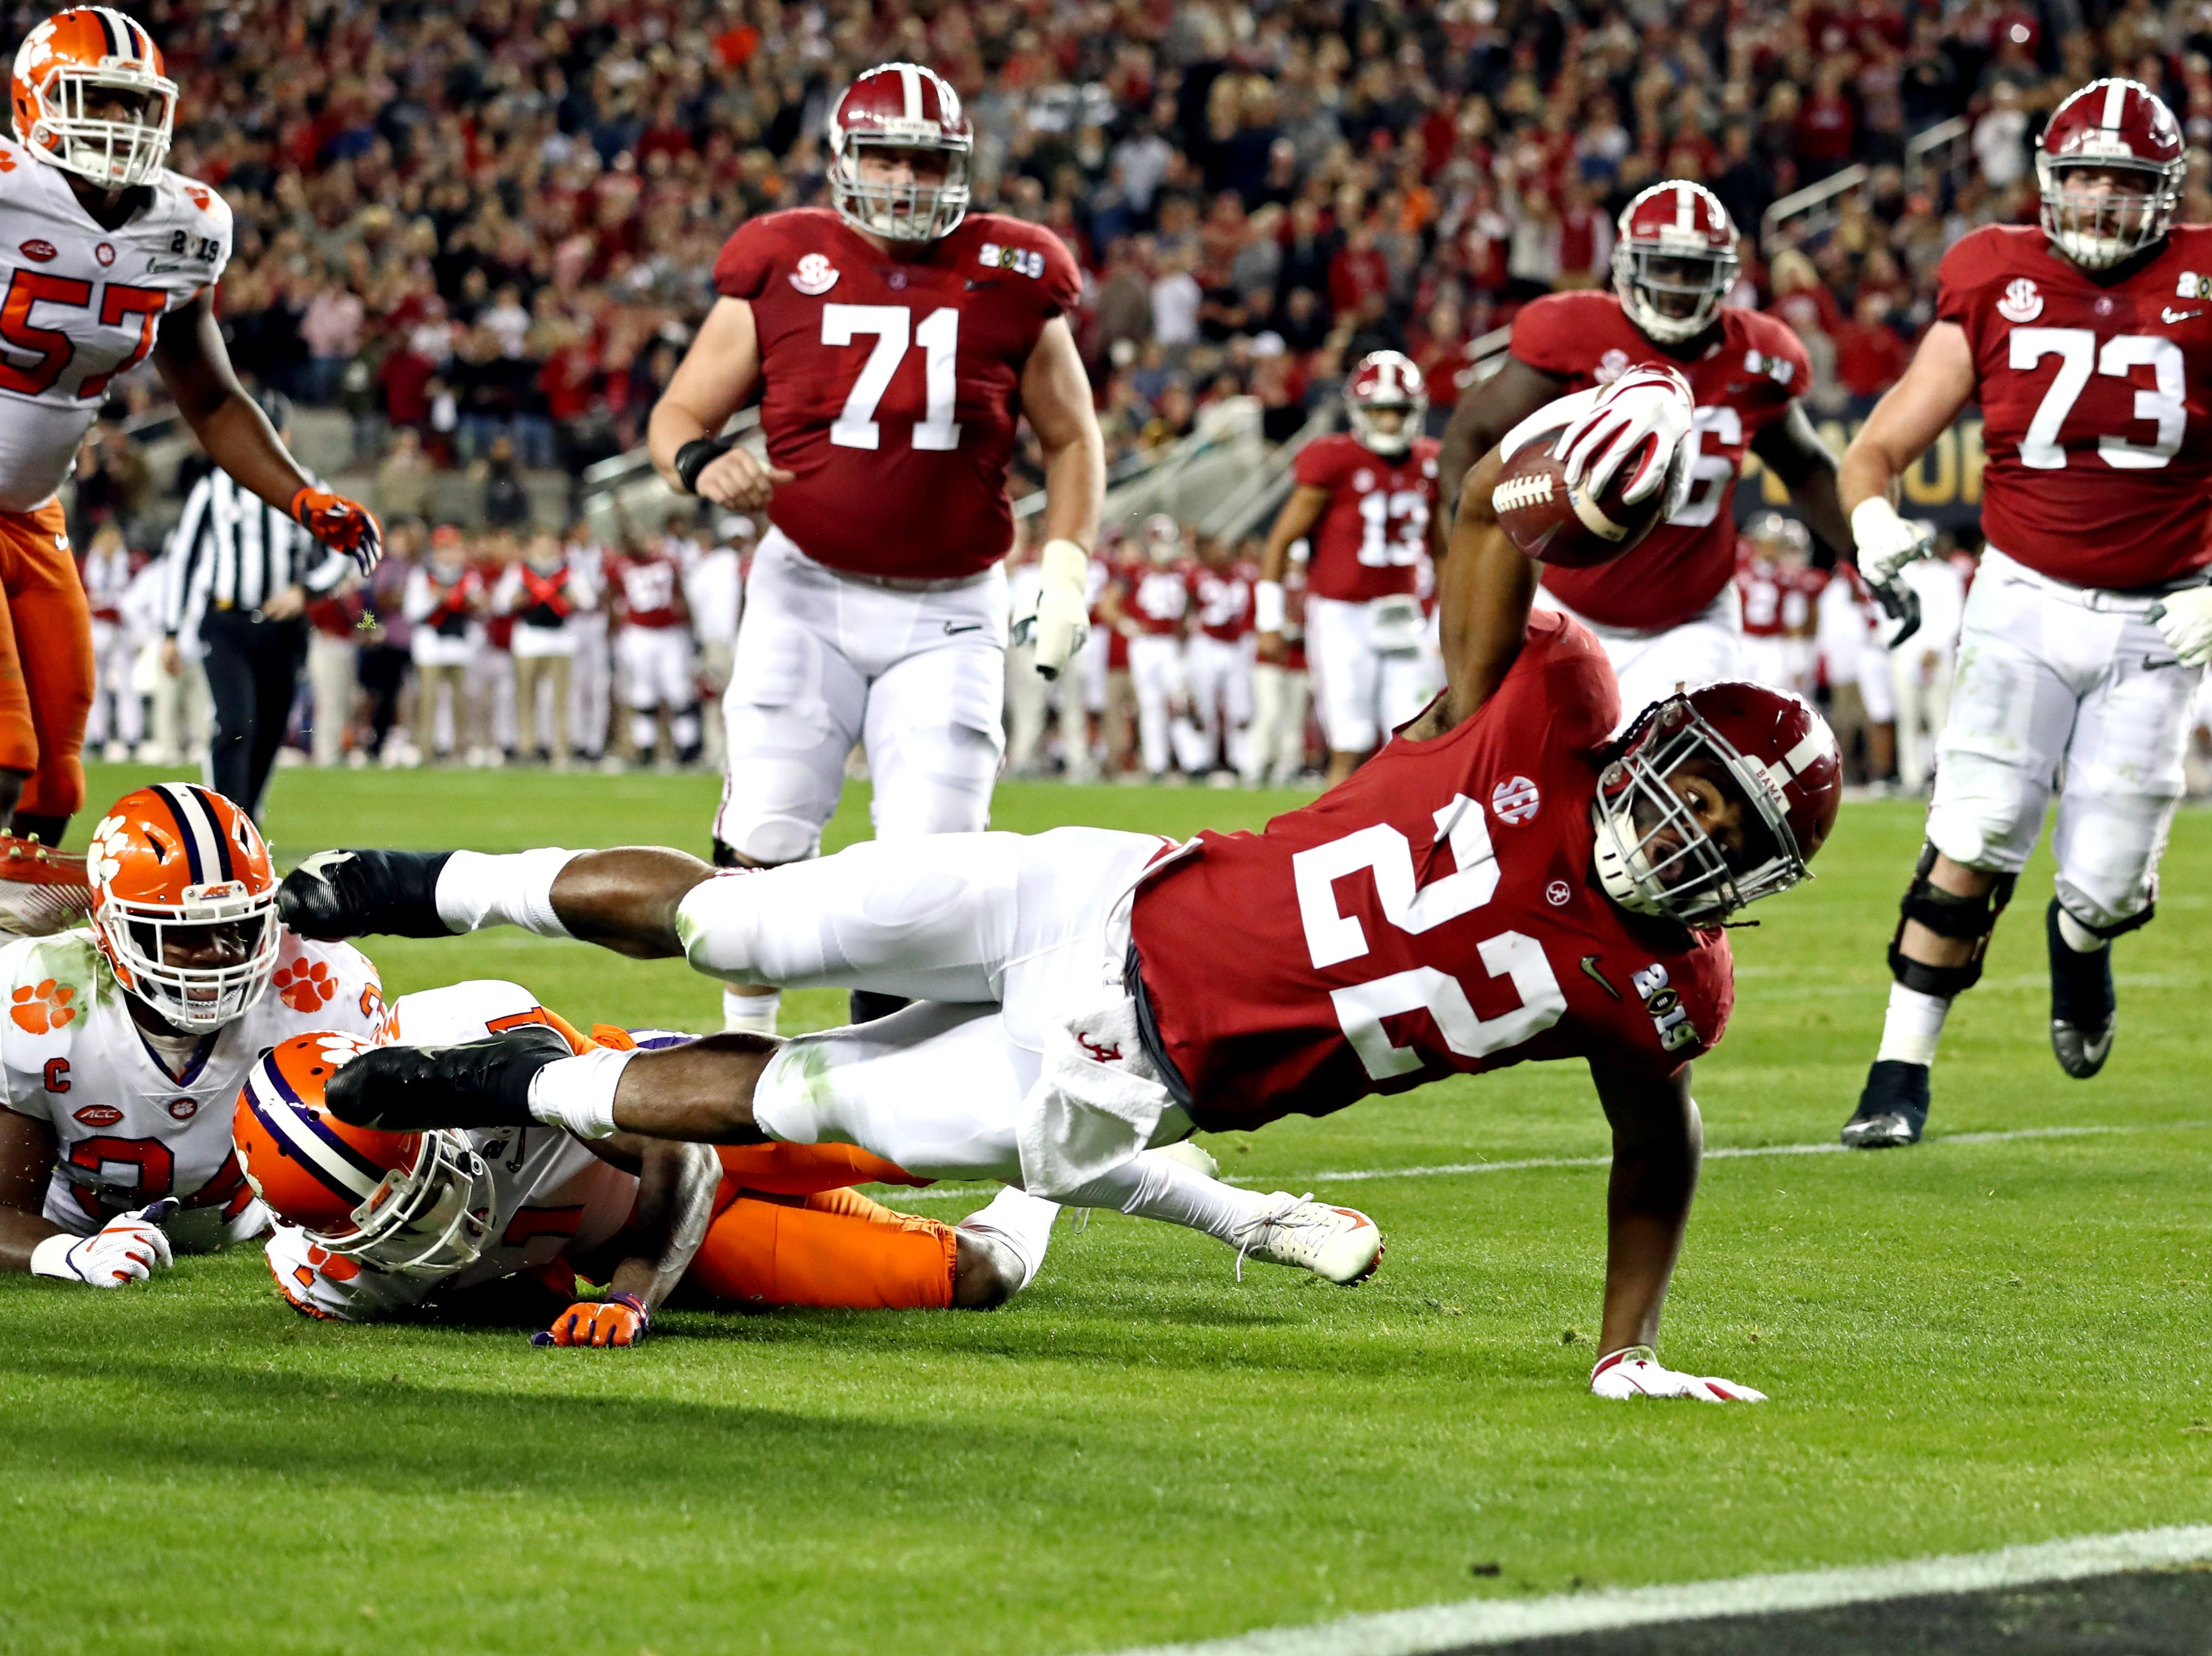 Alabama running back Najee Harris comes up short of the end zone in the first quarter.